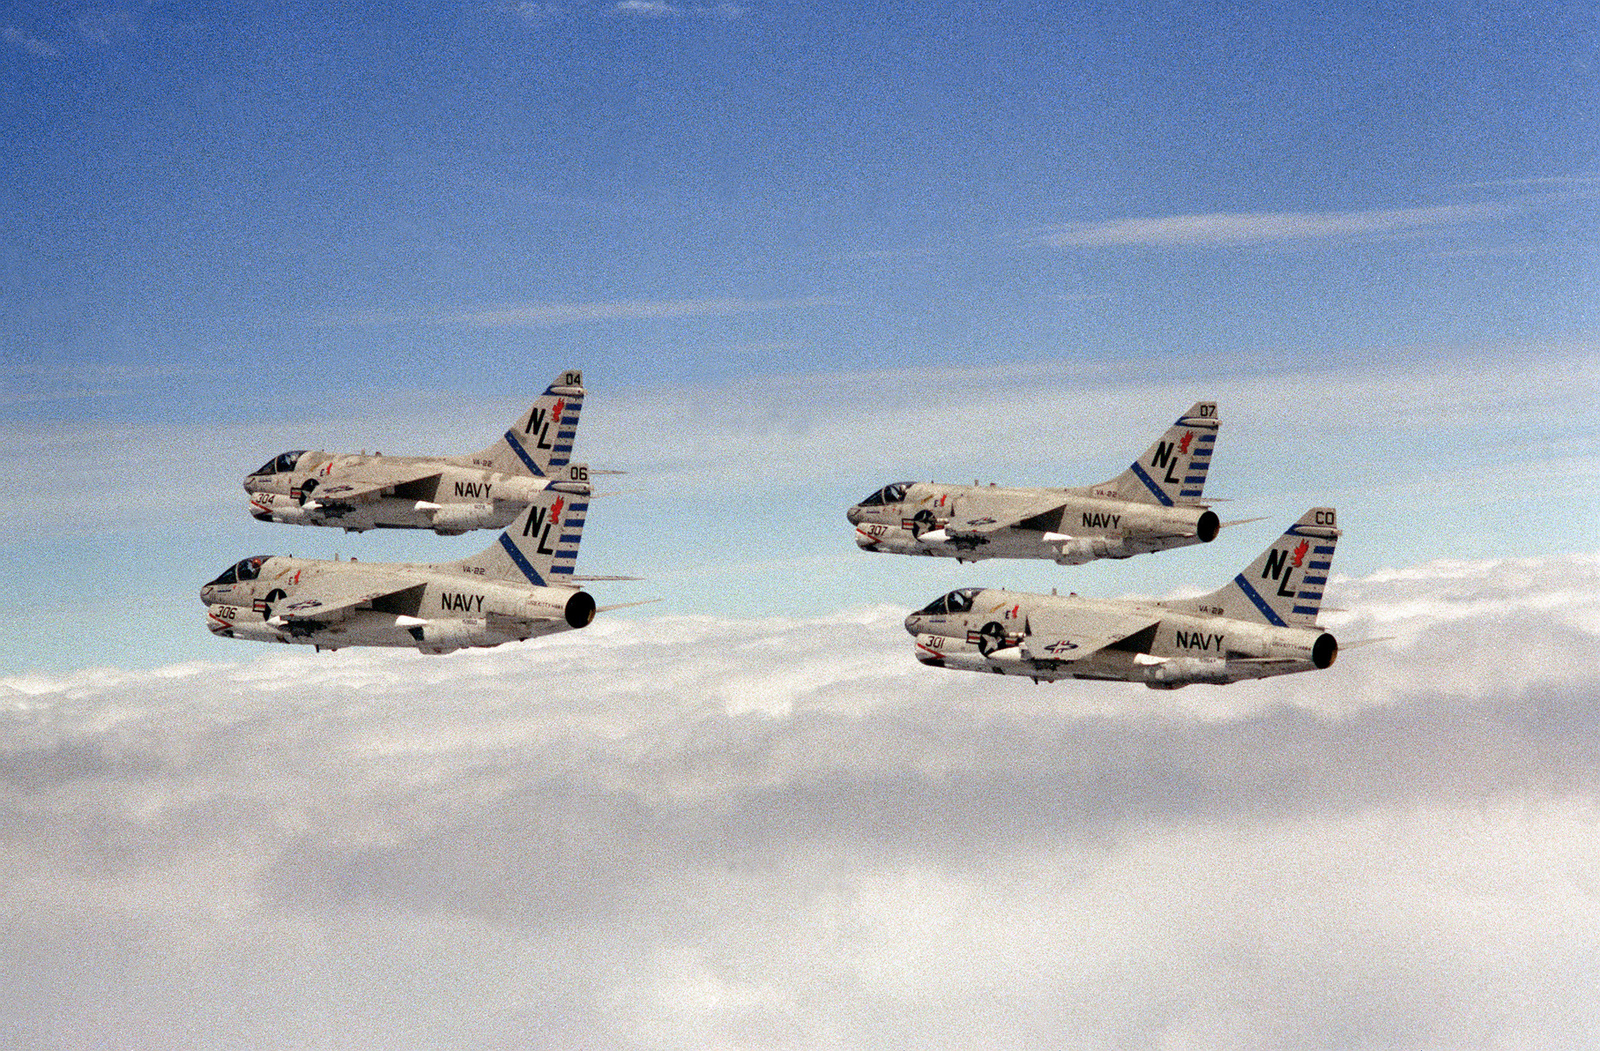 An air-to-air left rear view of four A-7 Corsair II aircraft from Attack Squadron 22 (VA-22). The Carrier Air Wing 15 (CVW-15) embarked aboard the aircraft carrier USS KITTY HAWK (CV-63)